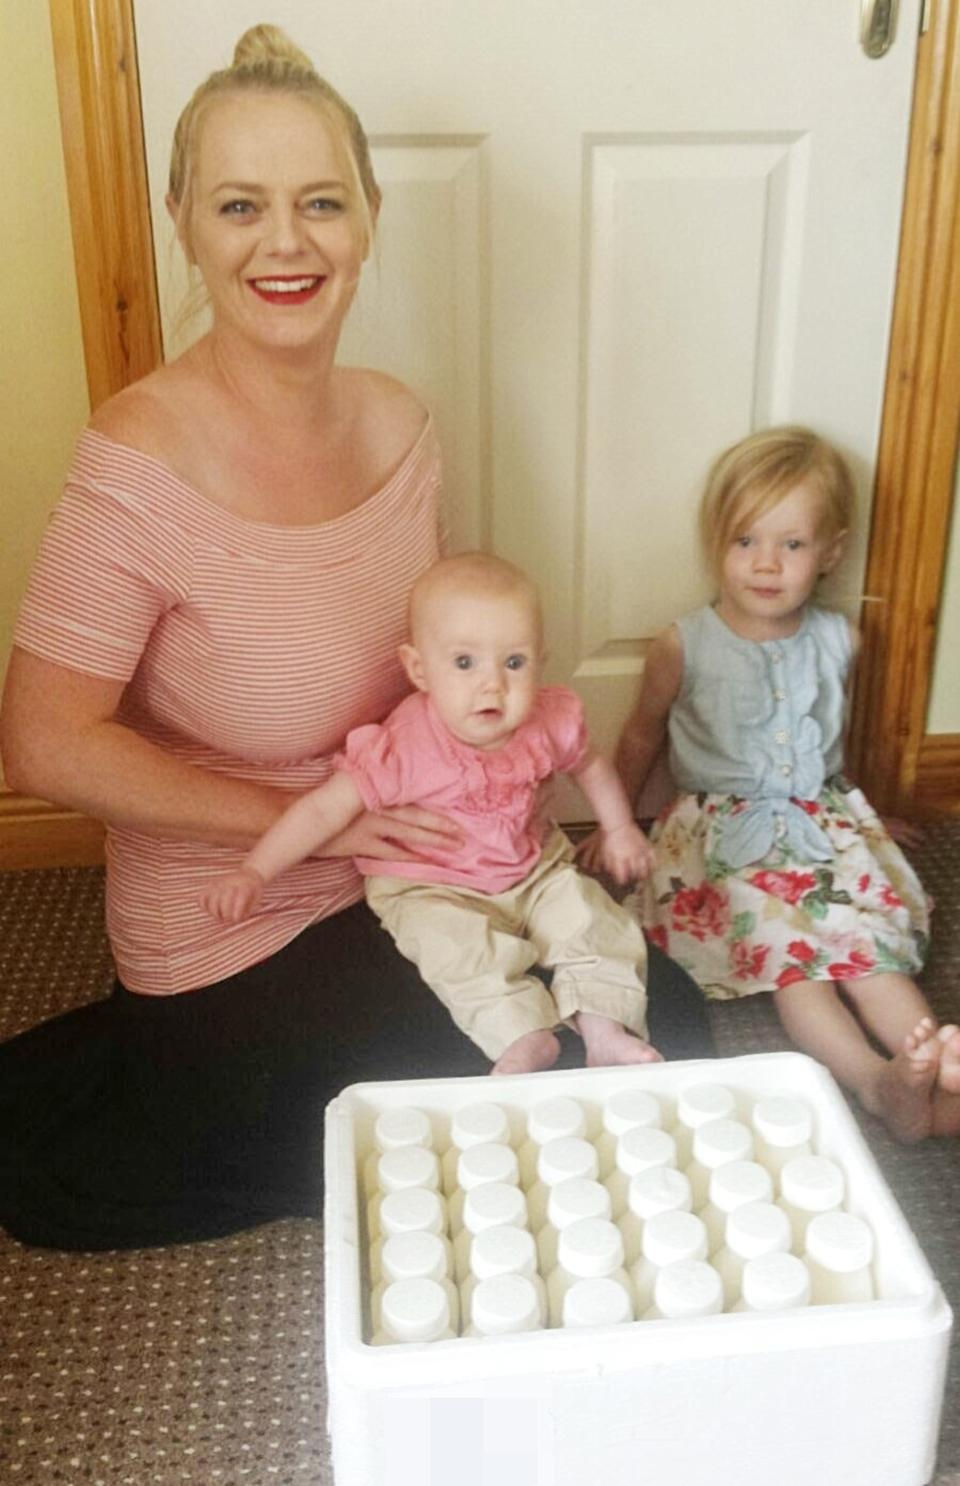 Natasha, pictured here with her daughters Grace and Ellie, and the milk she donated (PA Real Life/Collect)